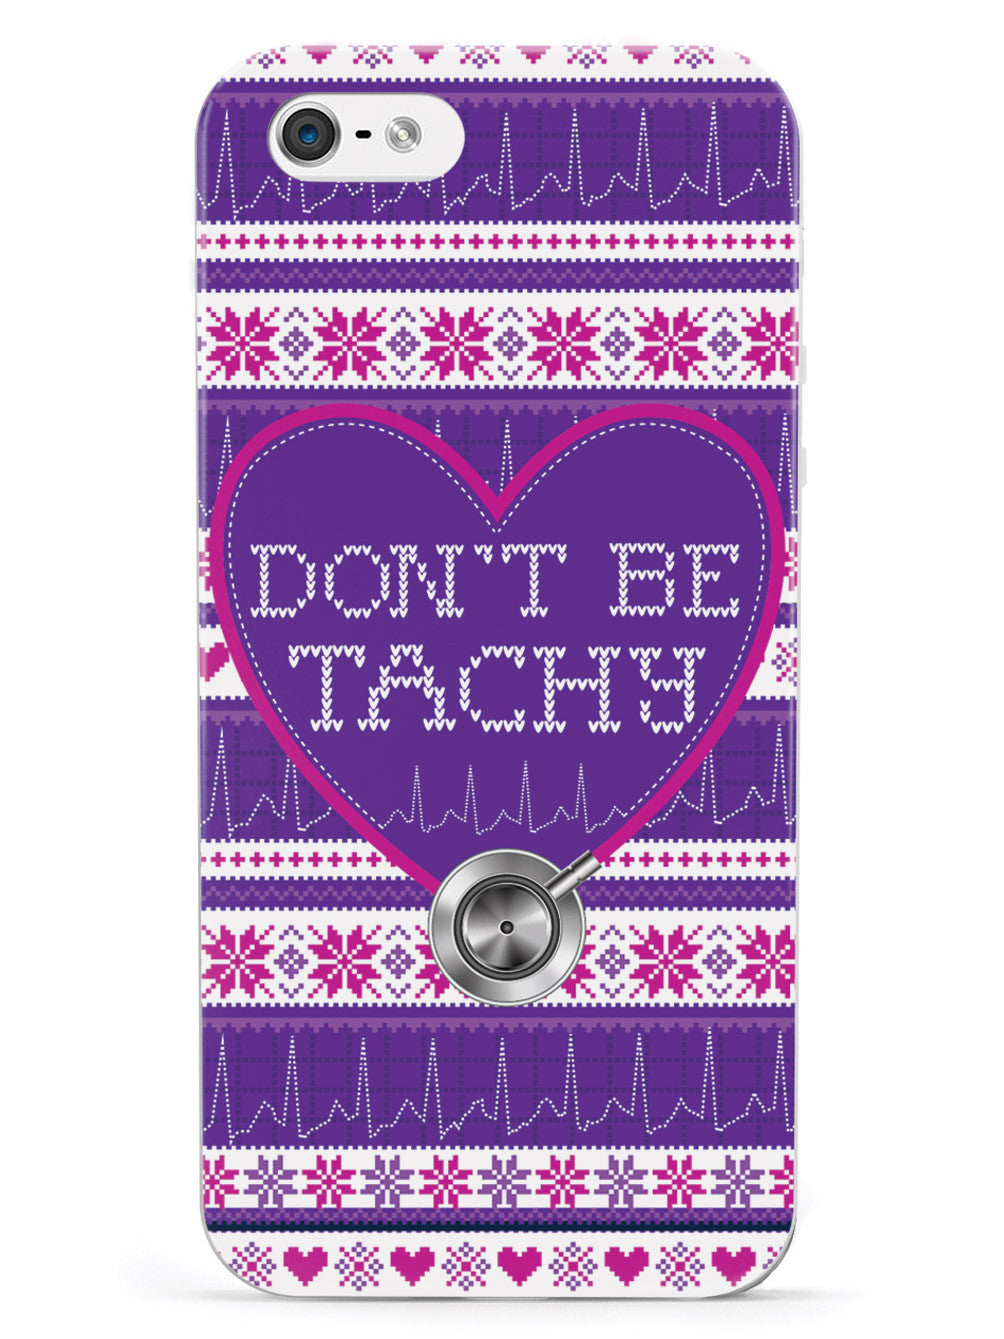 Don't Be Tachy - Nurse Case - Purples Case